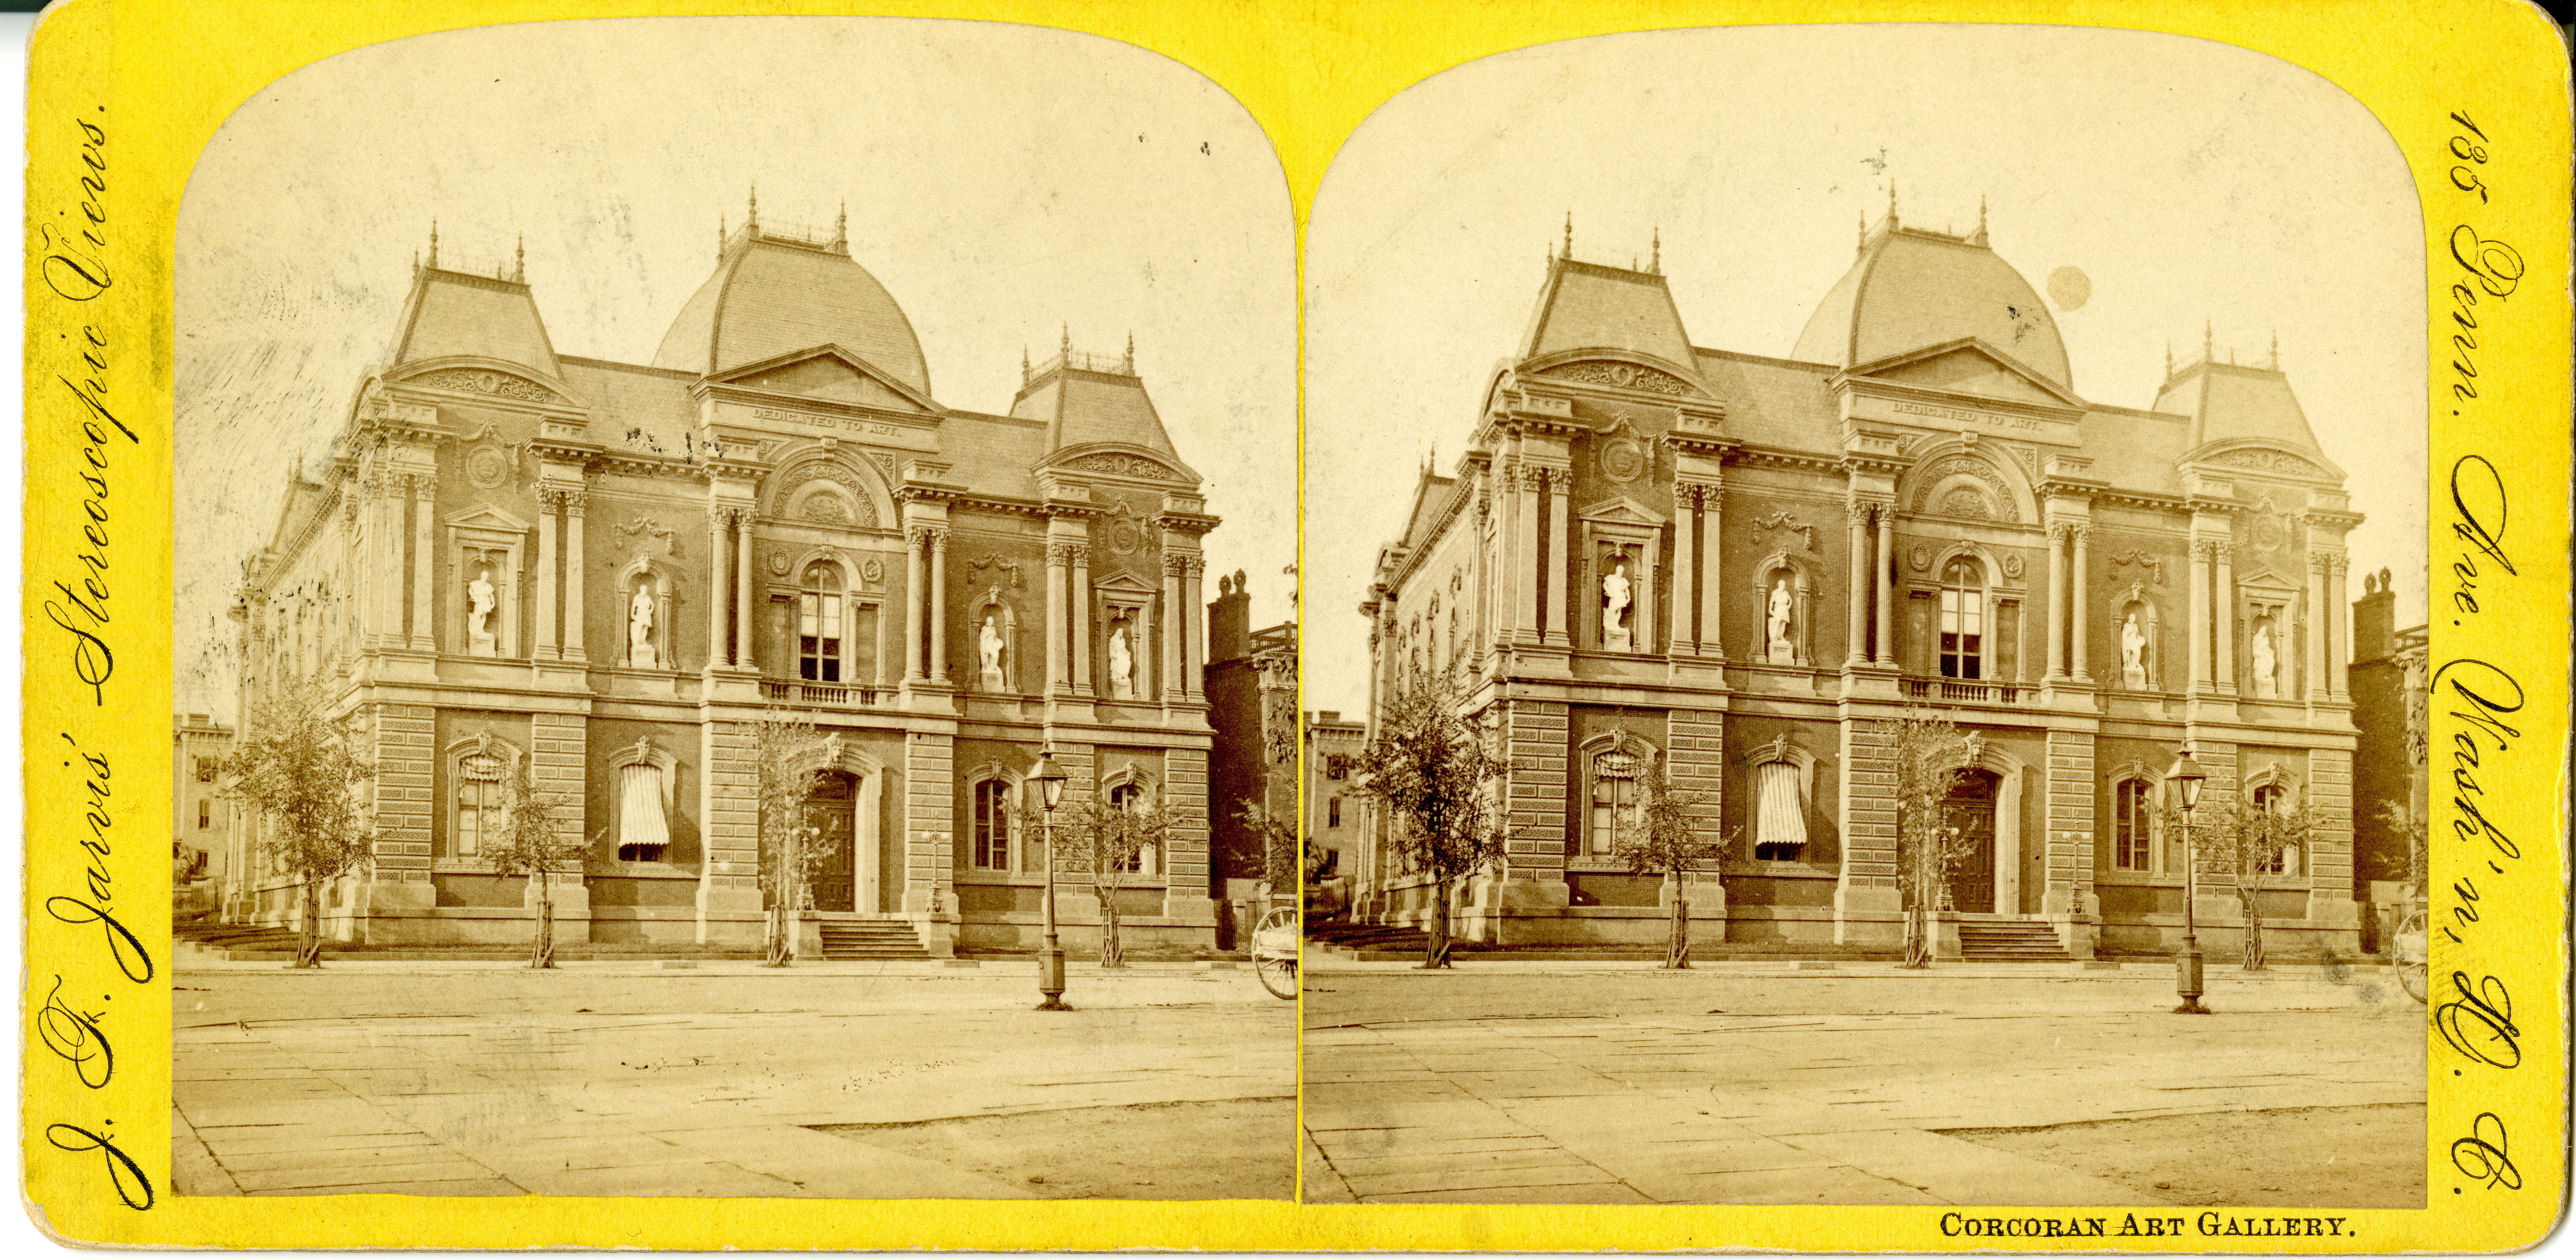 Stereoscopic views of a building.